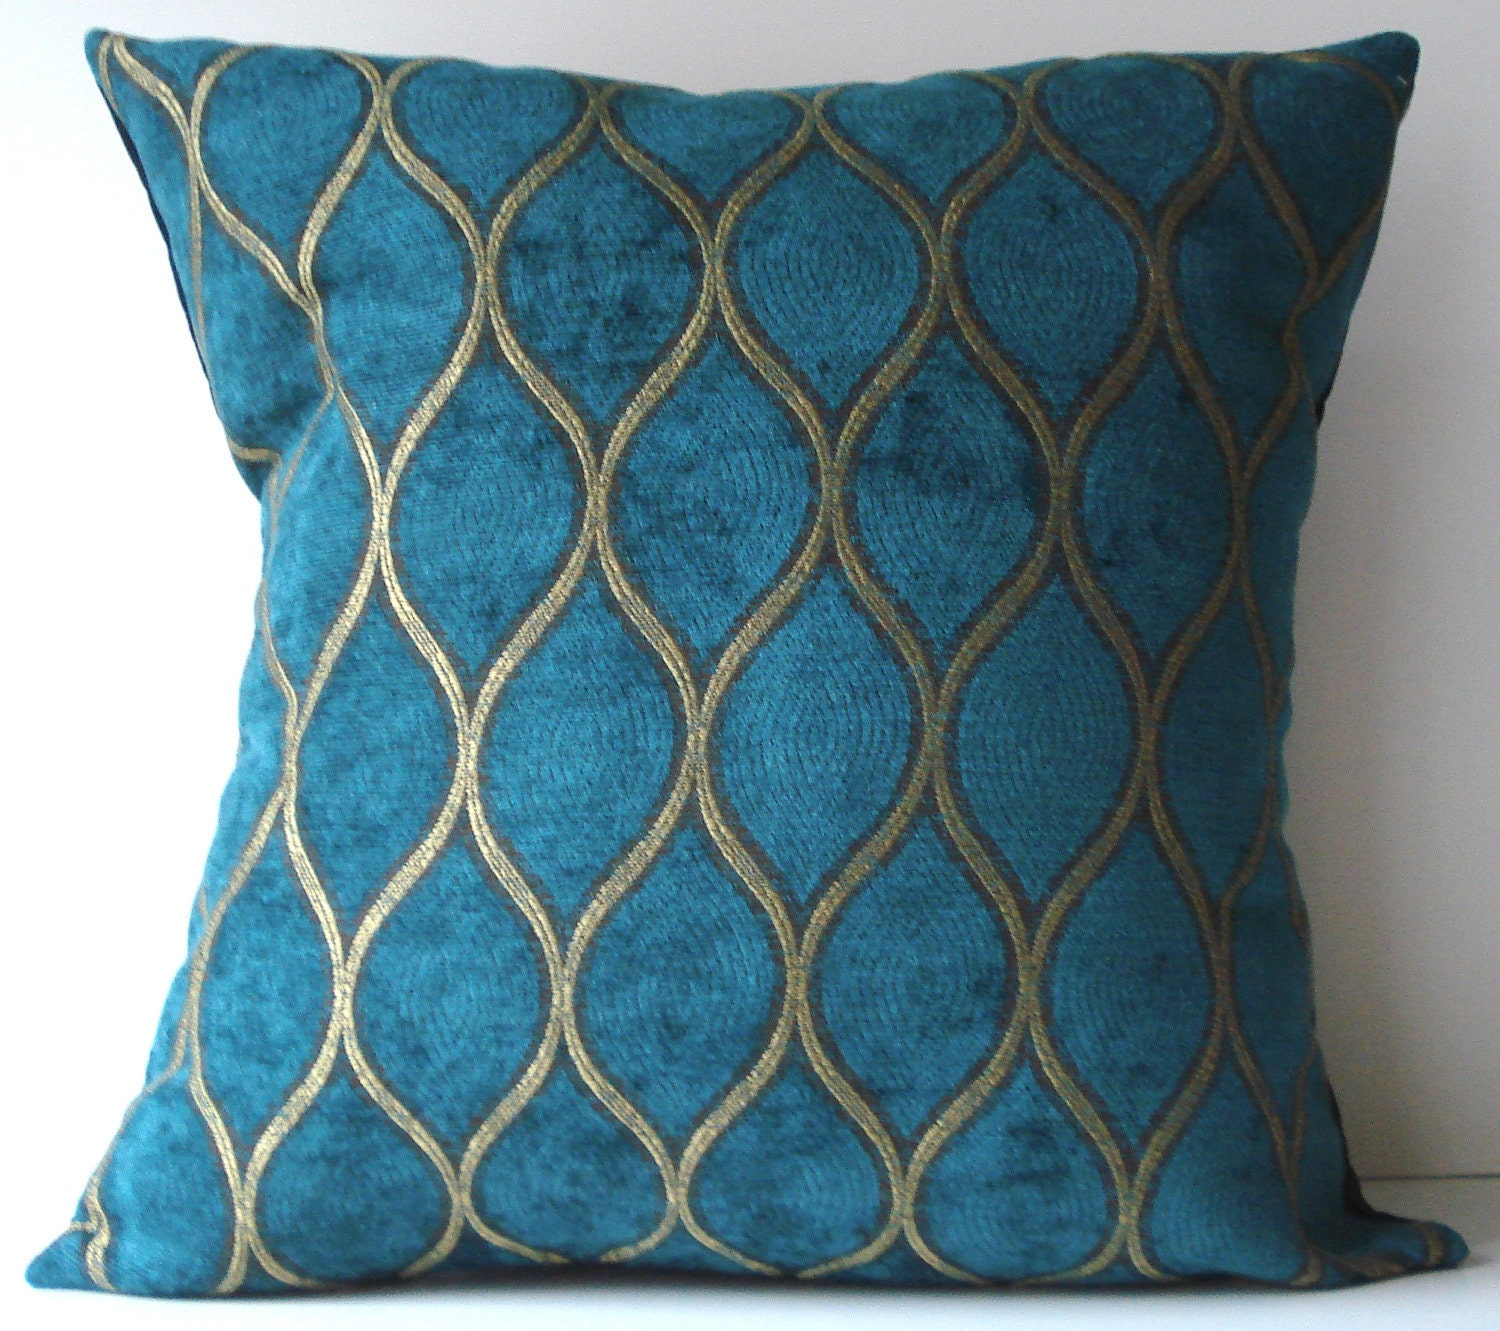 New 18x18 Inch Designer Handmade Pillow Case Peacock Blue And